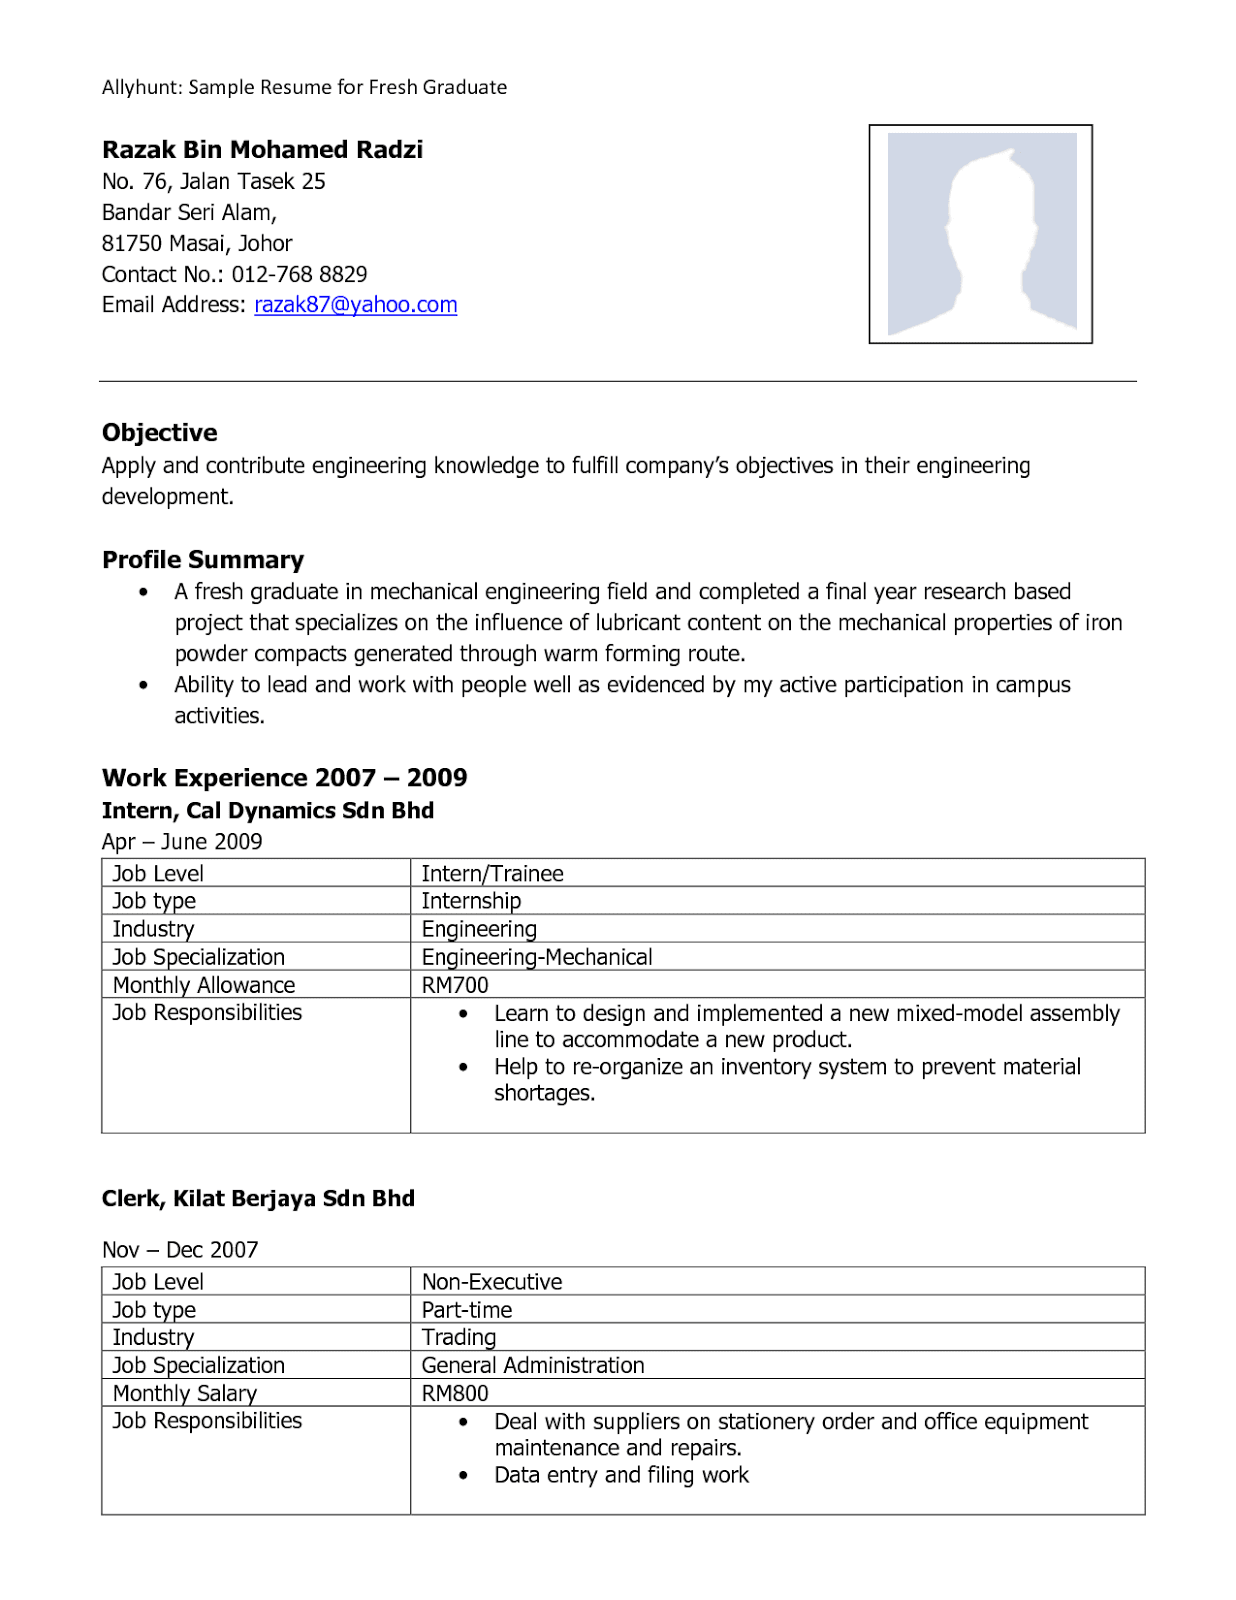 Resume Sample for Fresh Graduate Without Experience - Free MS ...